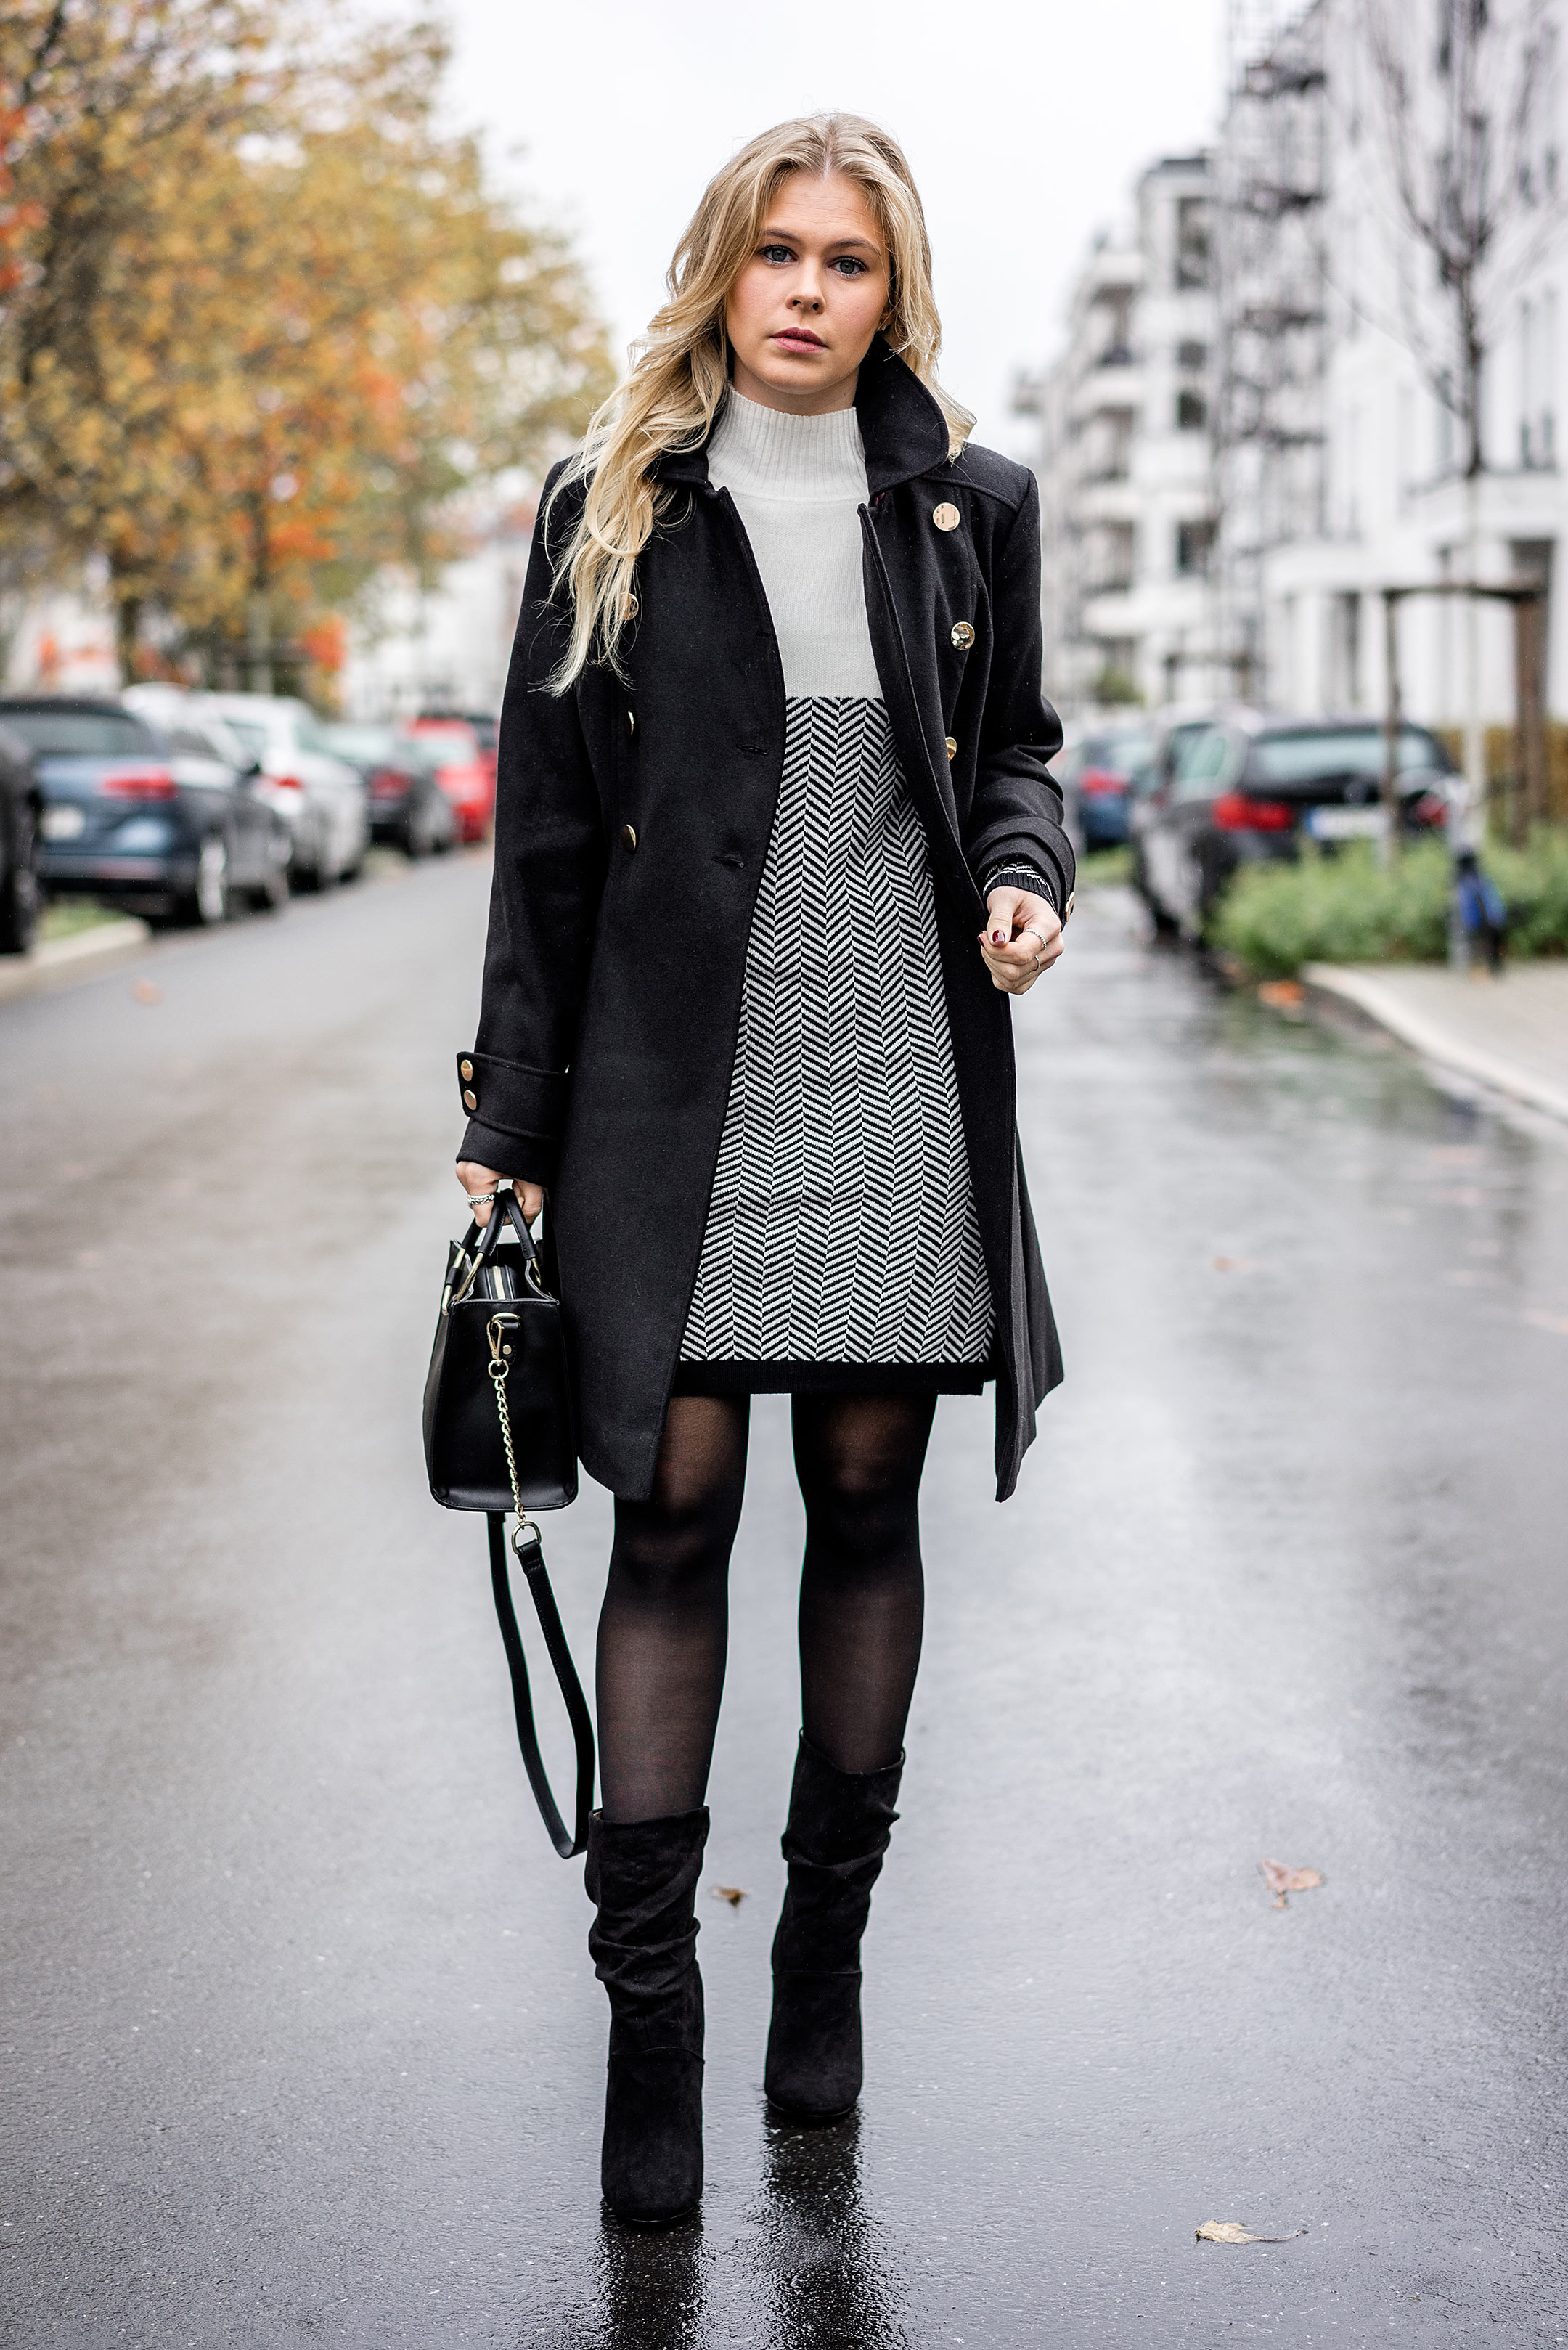 Winter Outfit Fashion Blogger Sunnyinga Düsseldorf Winterkleid Mantel Slouch Boots